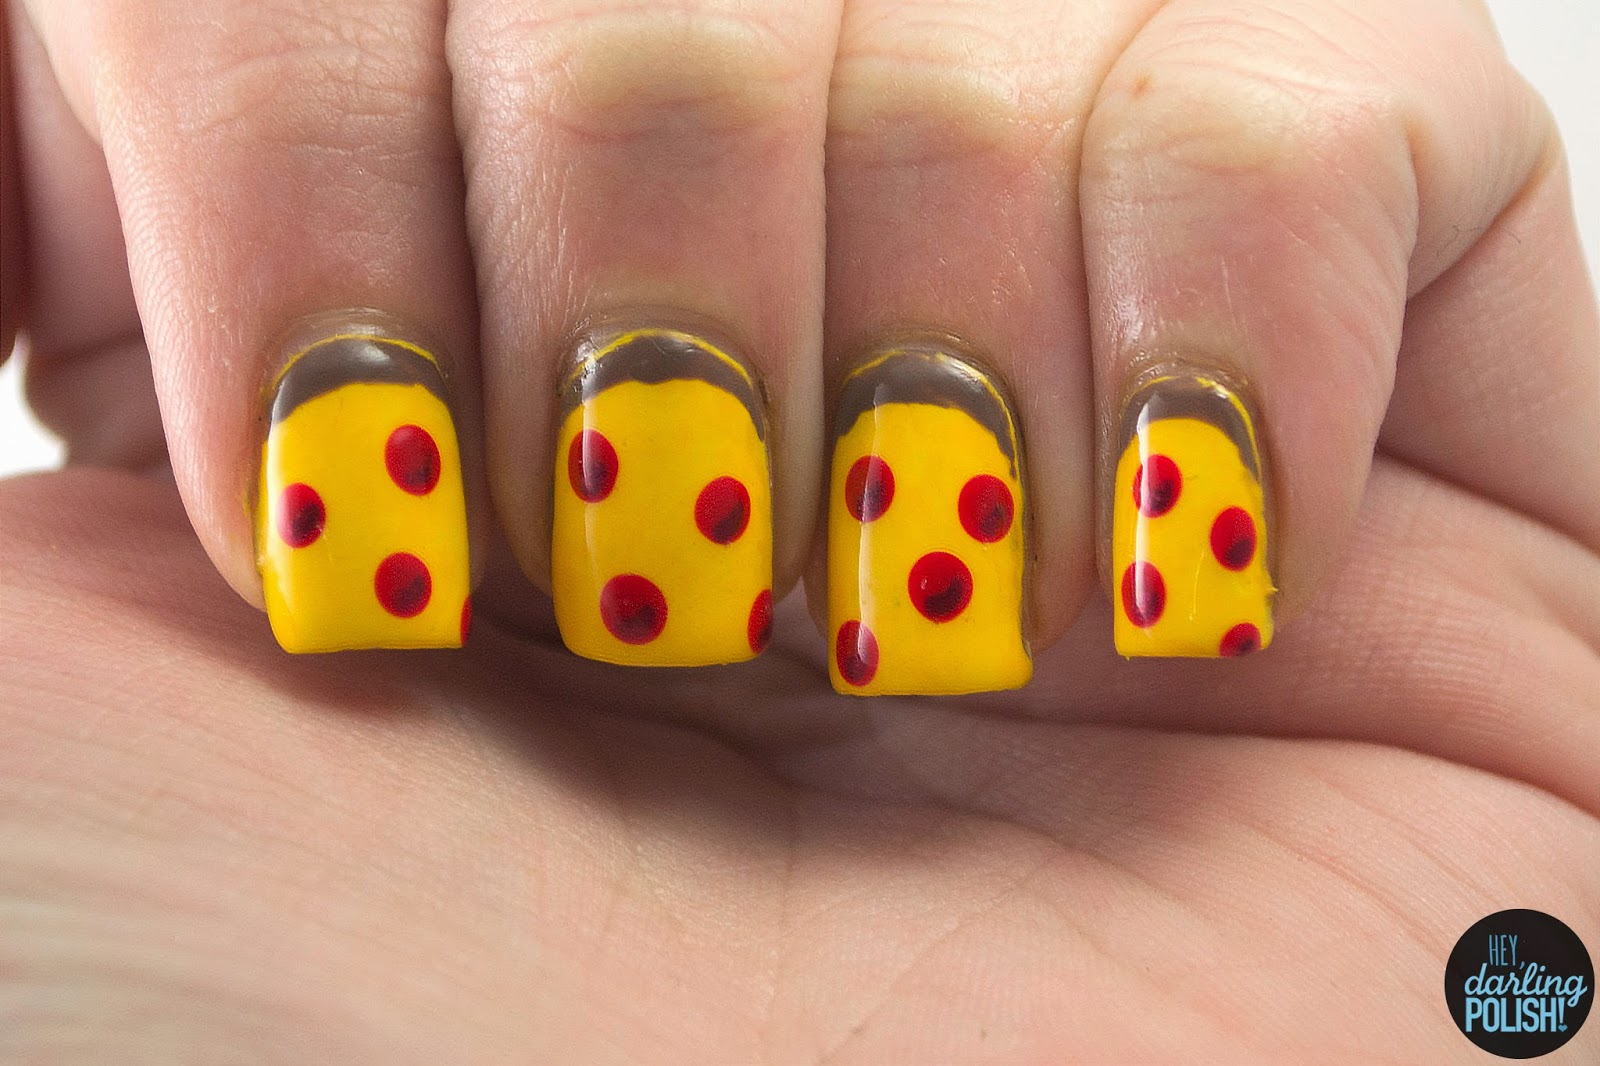 nails, nail art, nail polish, polish, pizza, pepperoni, hey darling polish, theme buffet